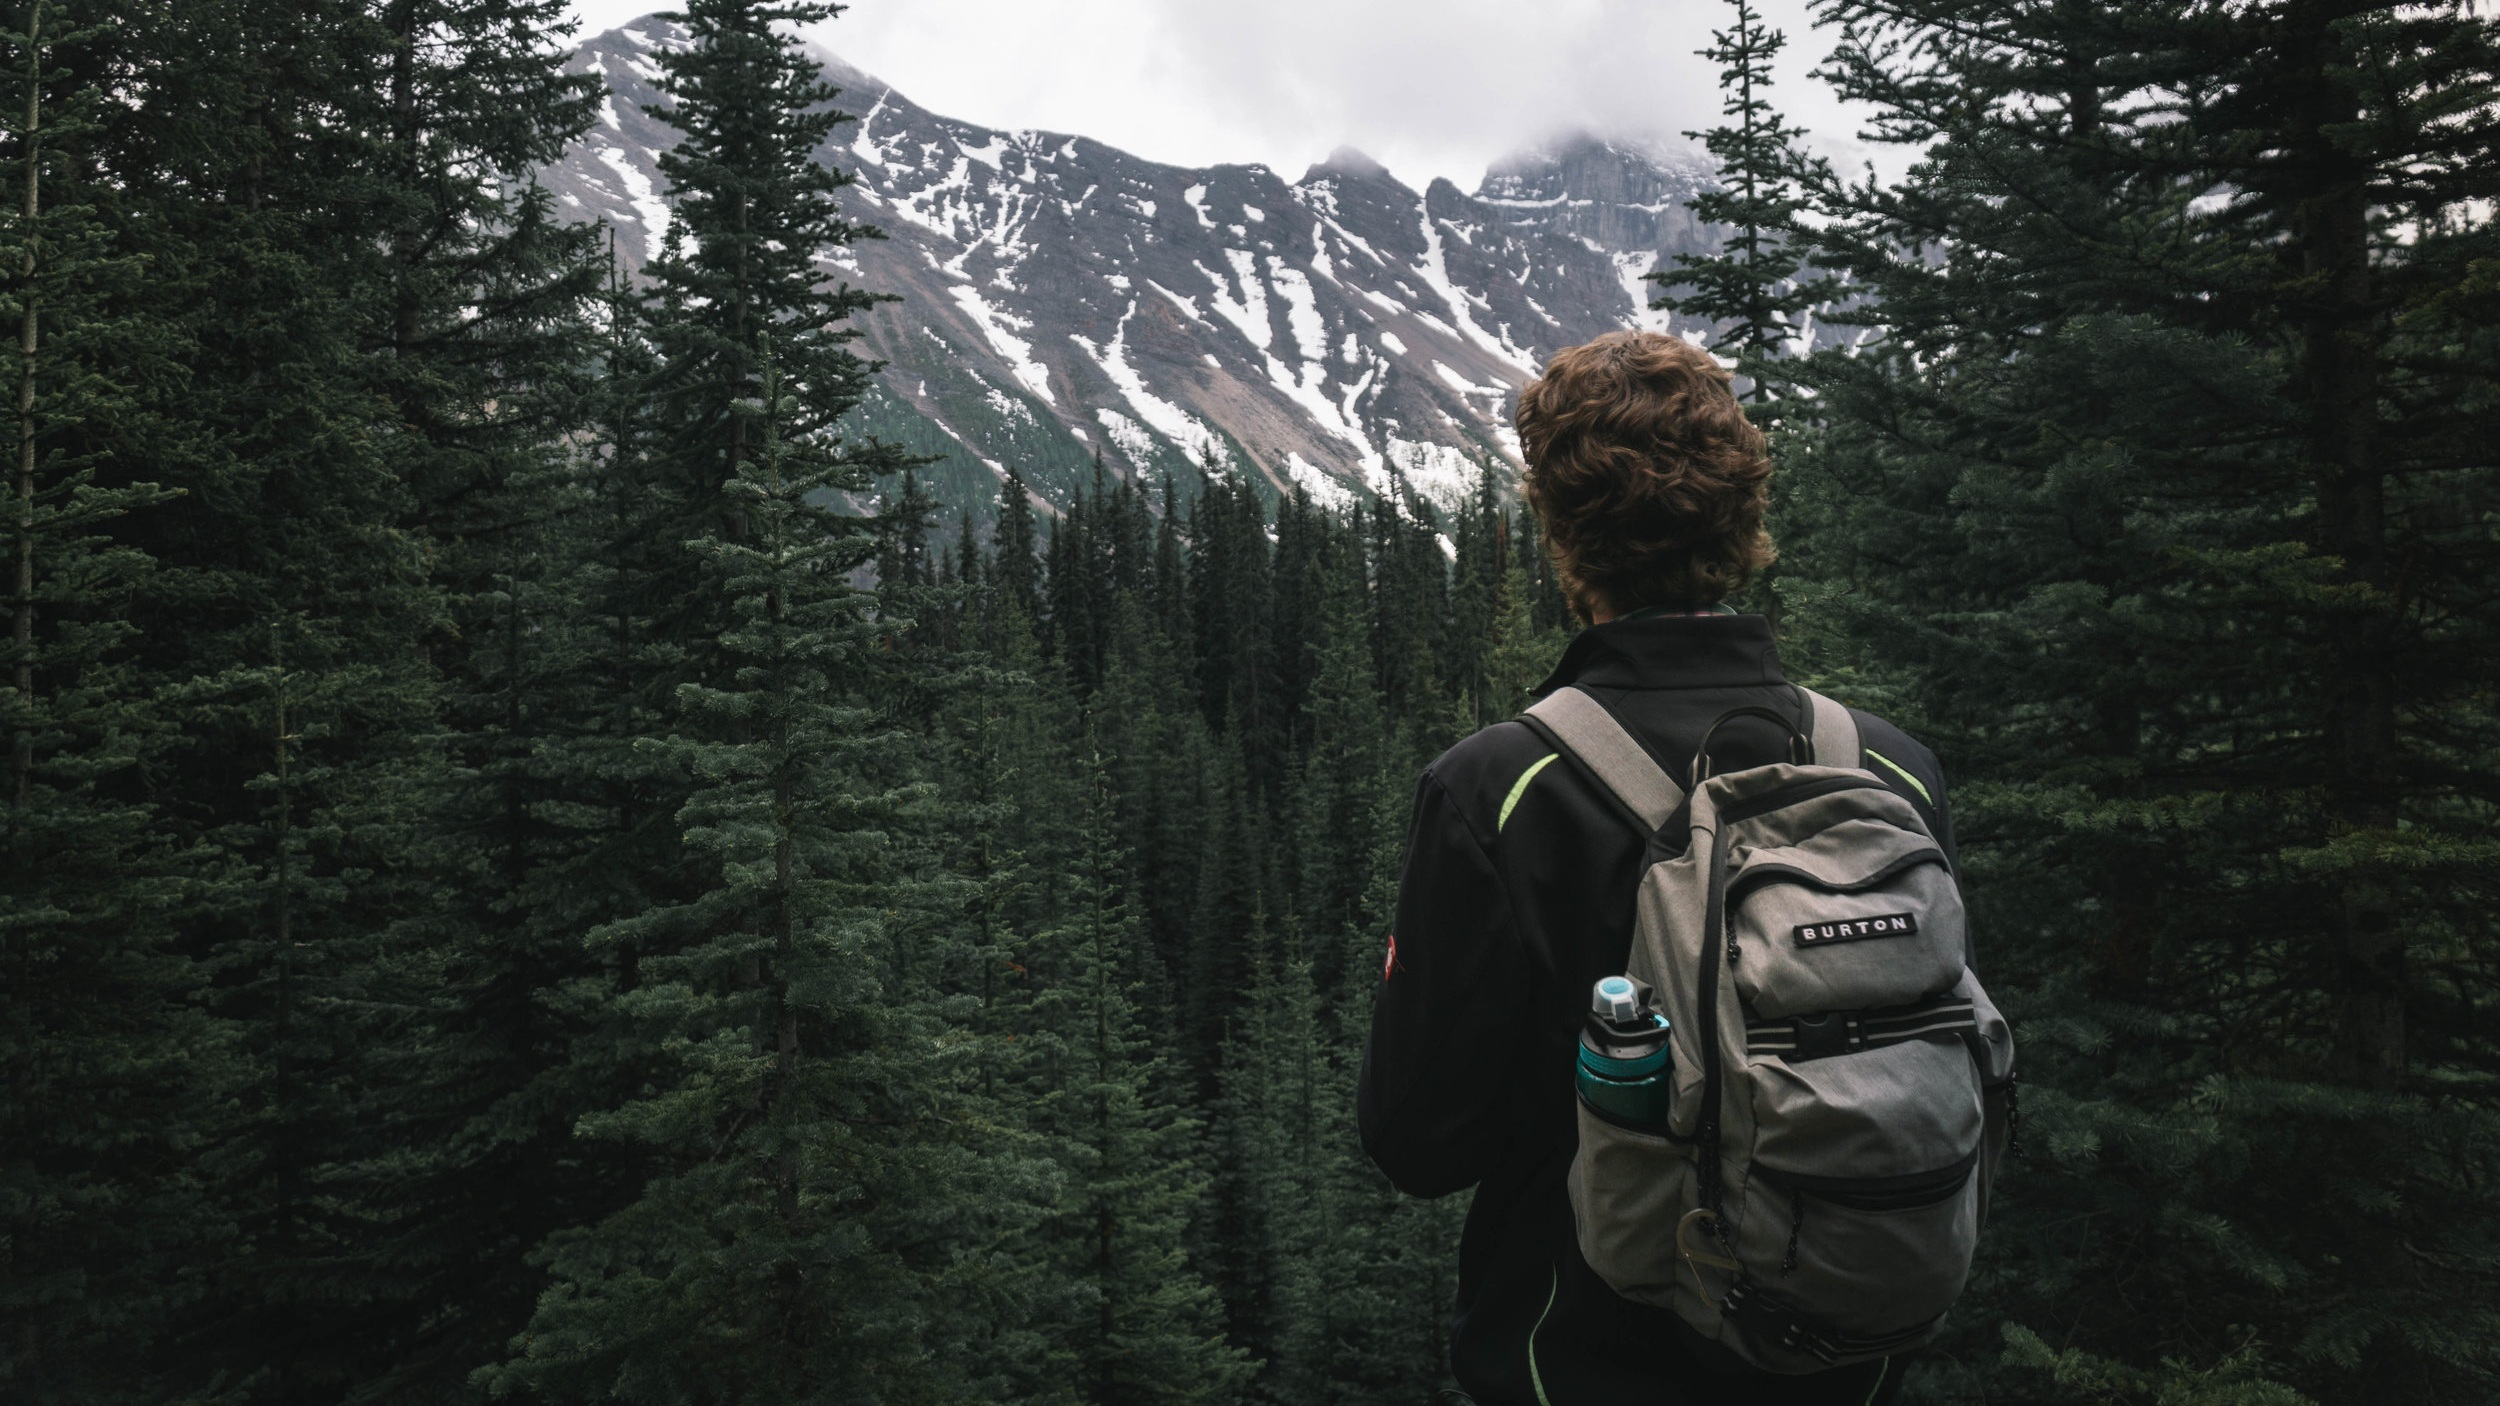 Loved by Adventurers - Many people have contacted us to let us know they are not photographers but love to be in the great outdoors and want to visit the beautiful locations America has to offer.